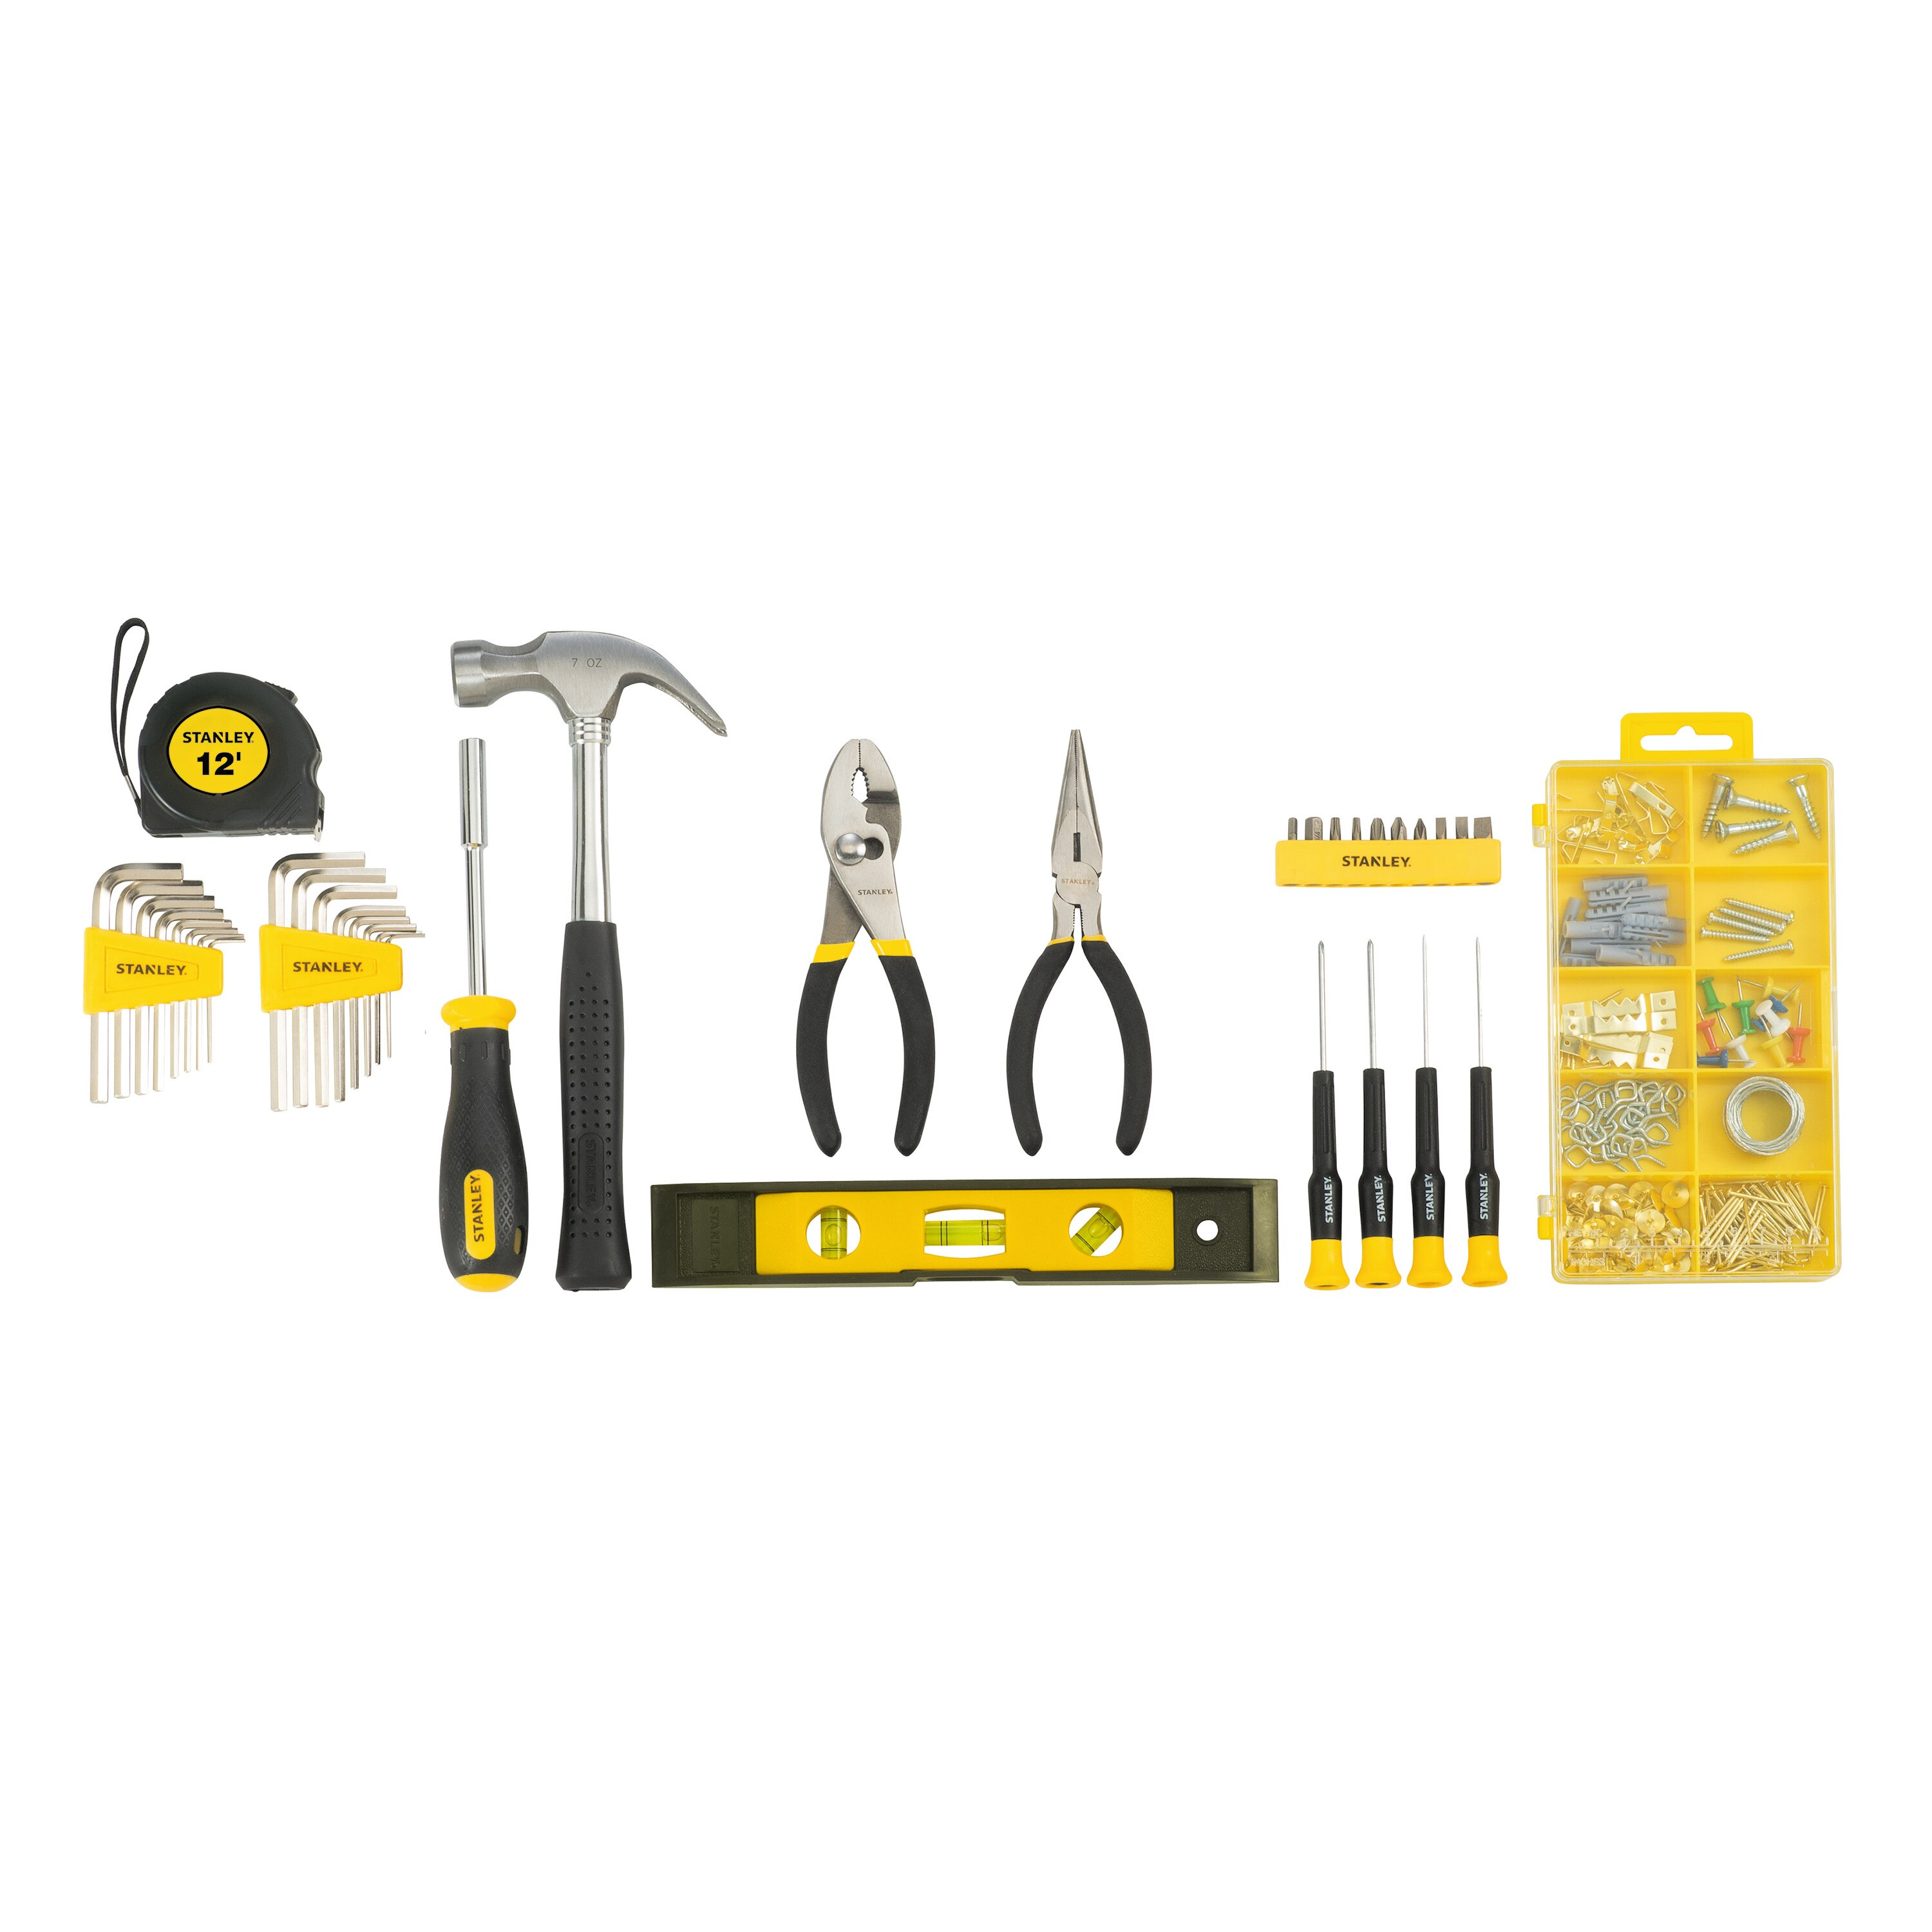 Stanley Tools - 38 pc Home Repair Set - STMT74101